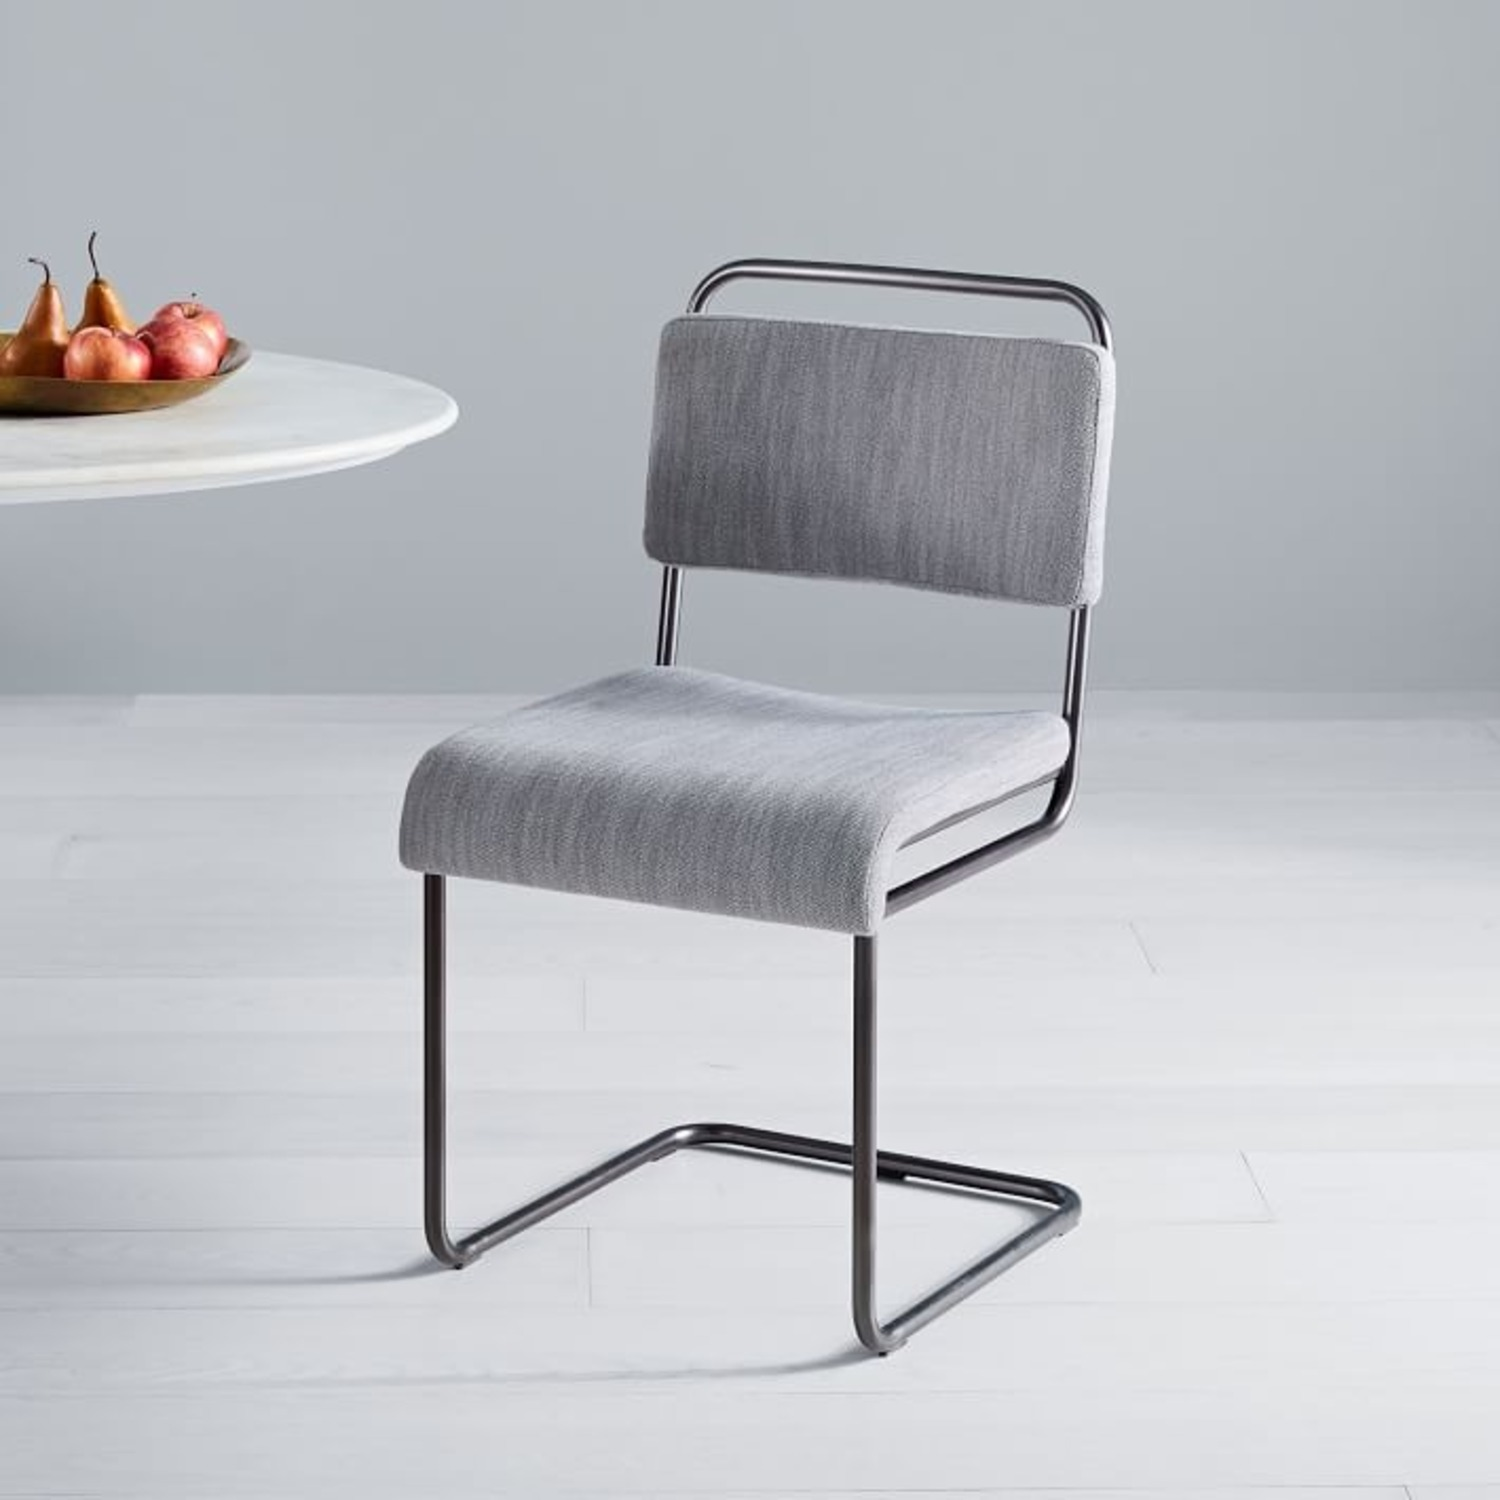 West Elm Industrial Cantilever Upholstered Chair - image-3